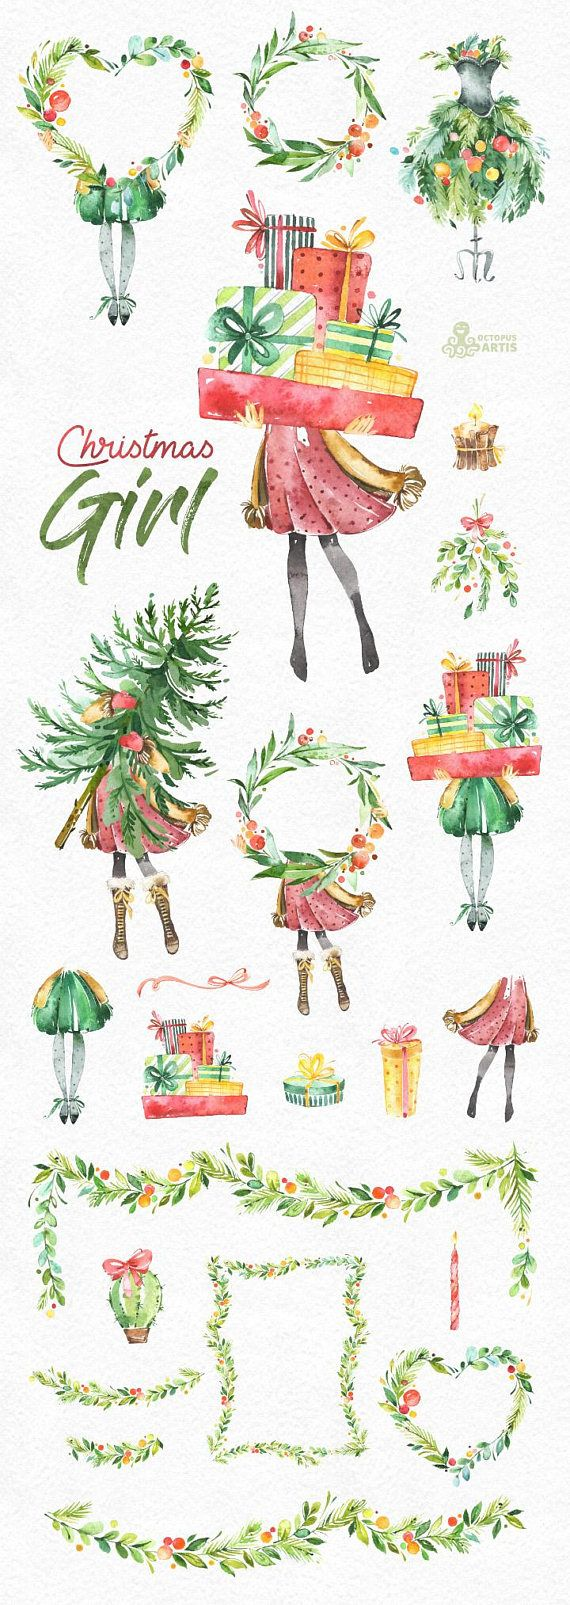 This Christmas Girl set of 23 high quality hand painted watercolor graphics. Perfect graphic for Christmas project, greeting cards, photos, posters, quotes and more.  -----------------------------------------------------------------  INSTANT DOWNLOAD Once payment is cleared, you can download your files directly from your Etsy account.  -----------------------------------------------------------------  This listing includes:  23 x Images in PNG with transparent background, different size…